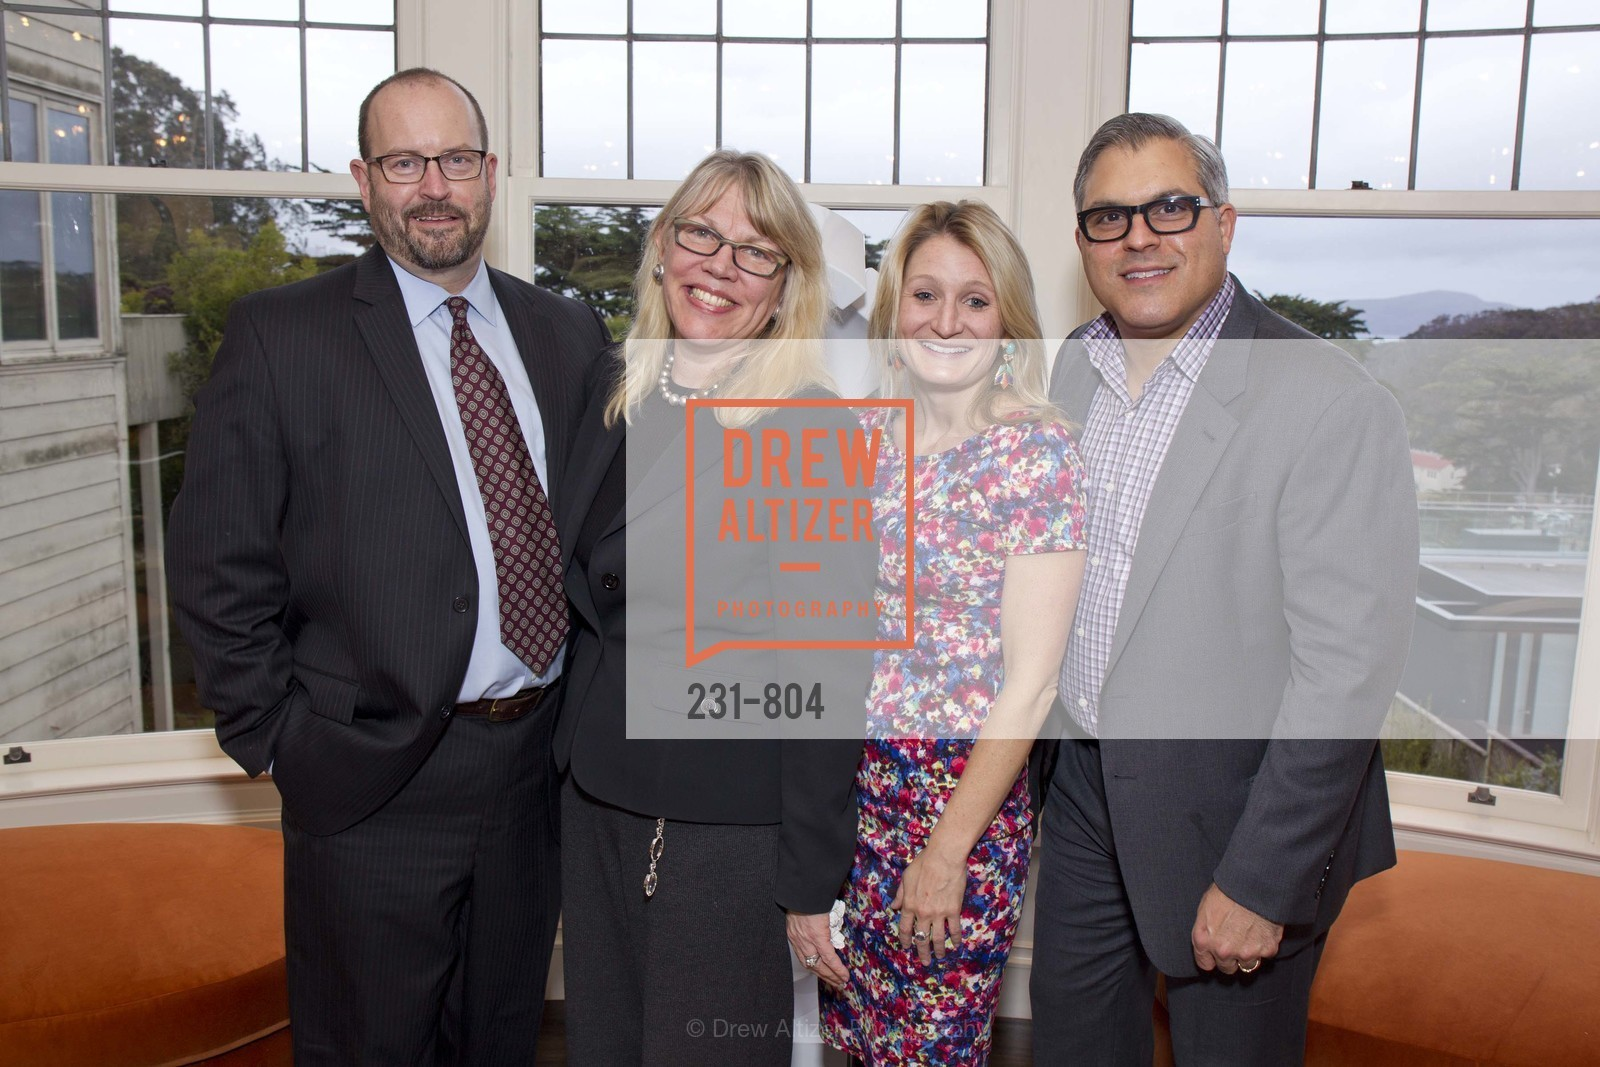 Dean MacCracken, Rachel Prater, Fleur Keyes, George Brazil, San Francisco Decorator Showcase Opening Night Party, US, April 25th, 2015,Drew Altizer, Drew Altizer Photography, full-service agency, private events, San Francisco photographer, photographer california